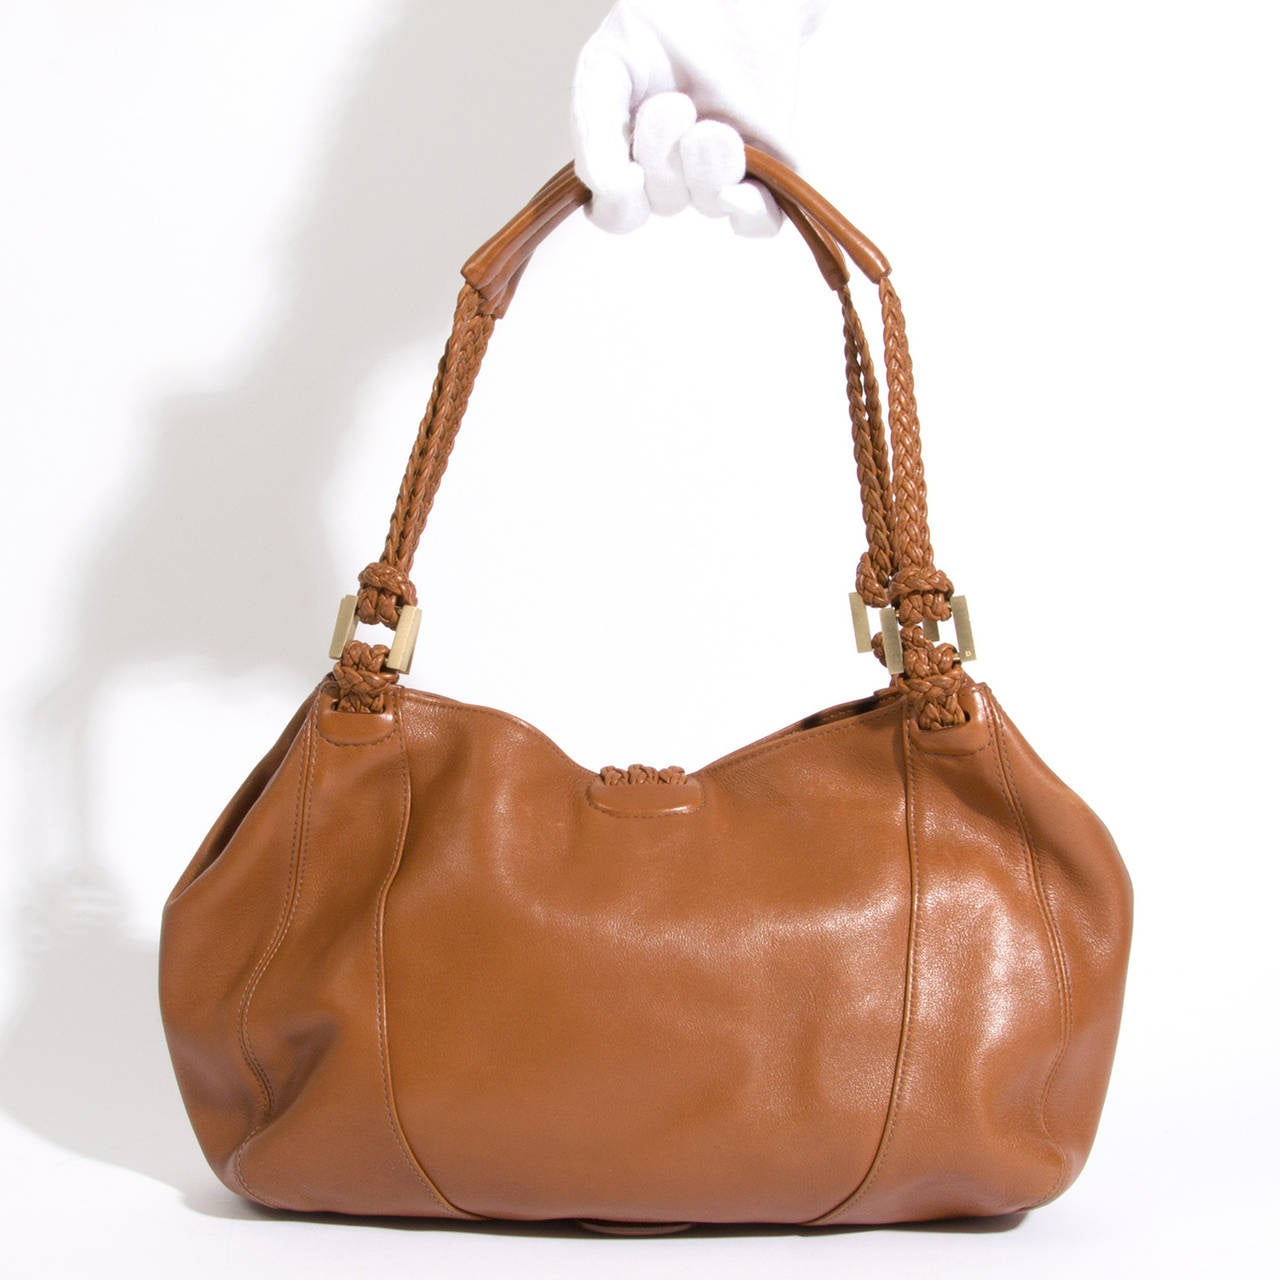 Find great deals on eBay for cognac hobo purse. Shop with confidence.